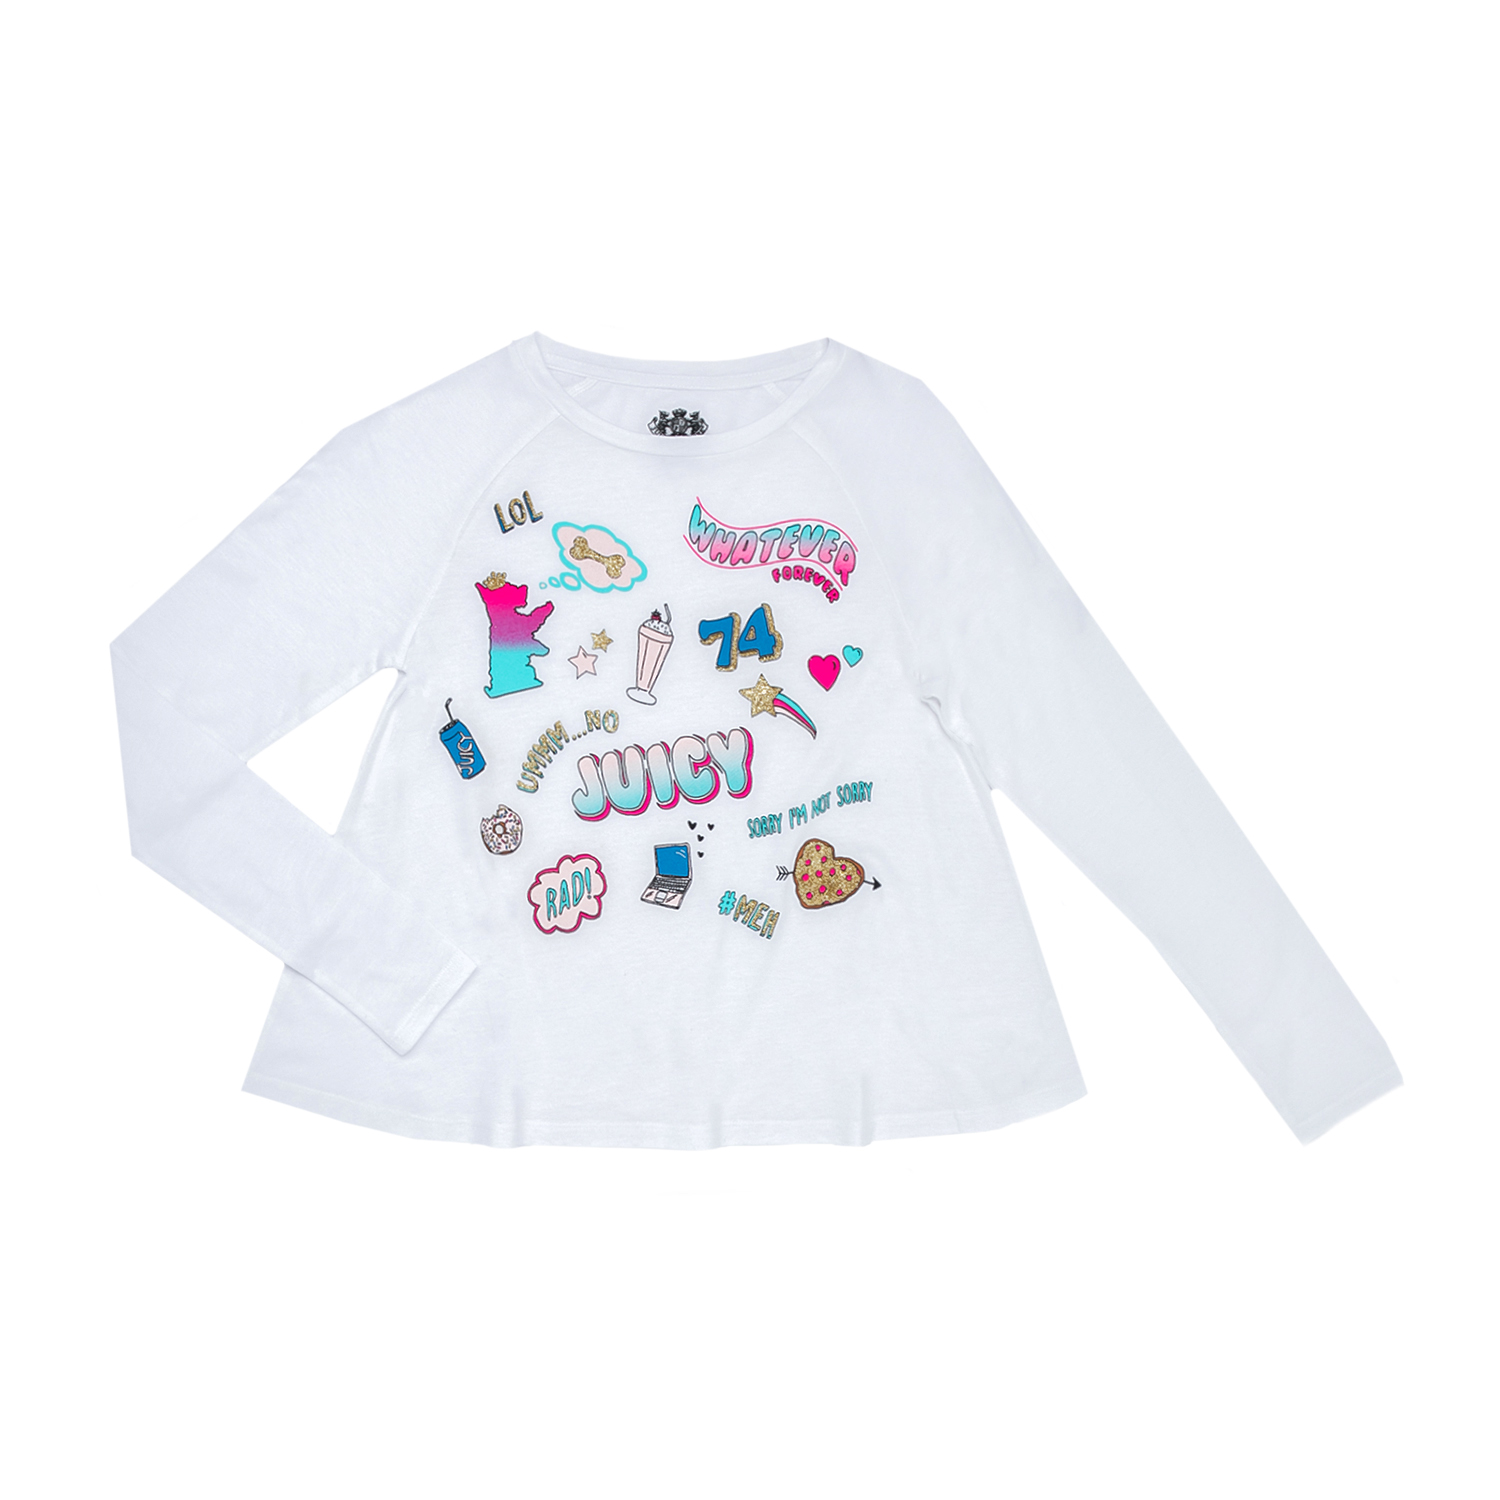 JUICY COUTURE KIDS – Παιδική μπλούζα JUICY COUTURE KIDS άσπρη